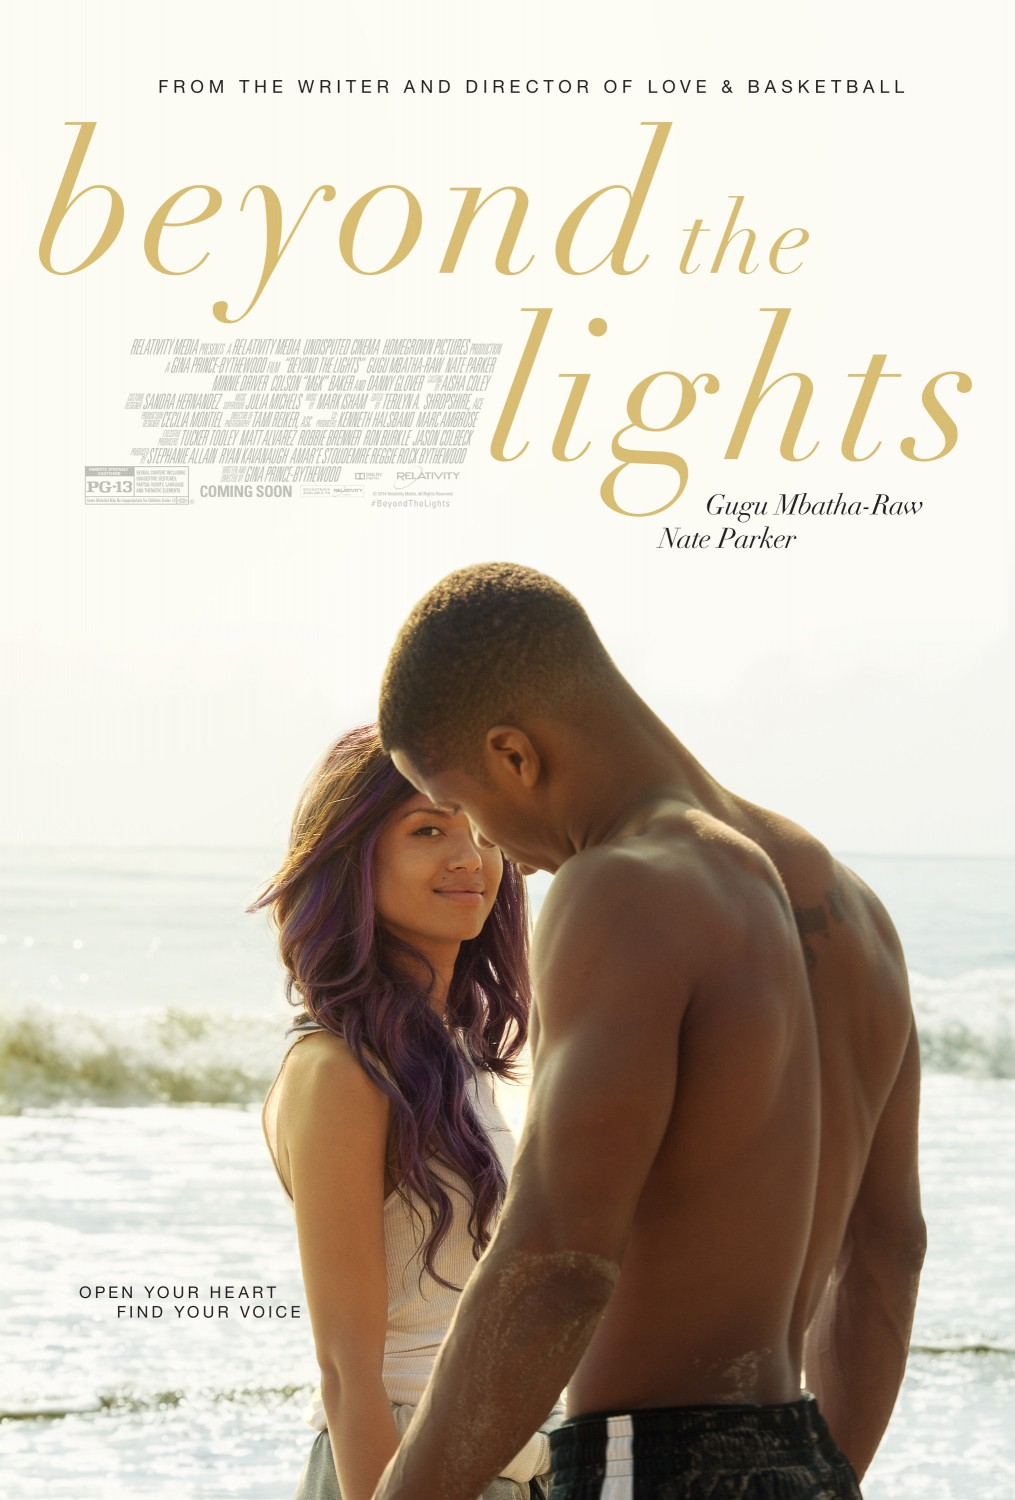 Meet the Worlds Latest Superstar In Beyond the Lights Trailer and Poster Meet the Worlds Latest Superstar In Beyond the Lights Trailer and Poster